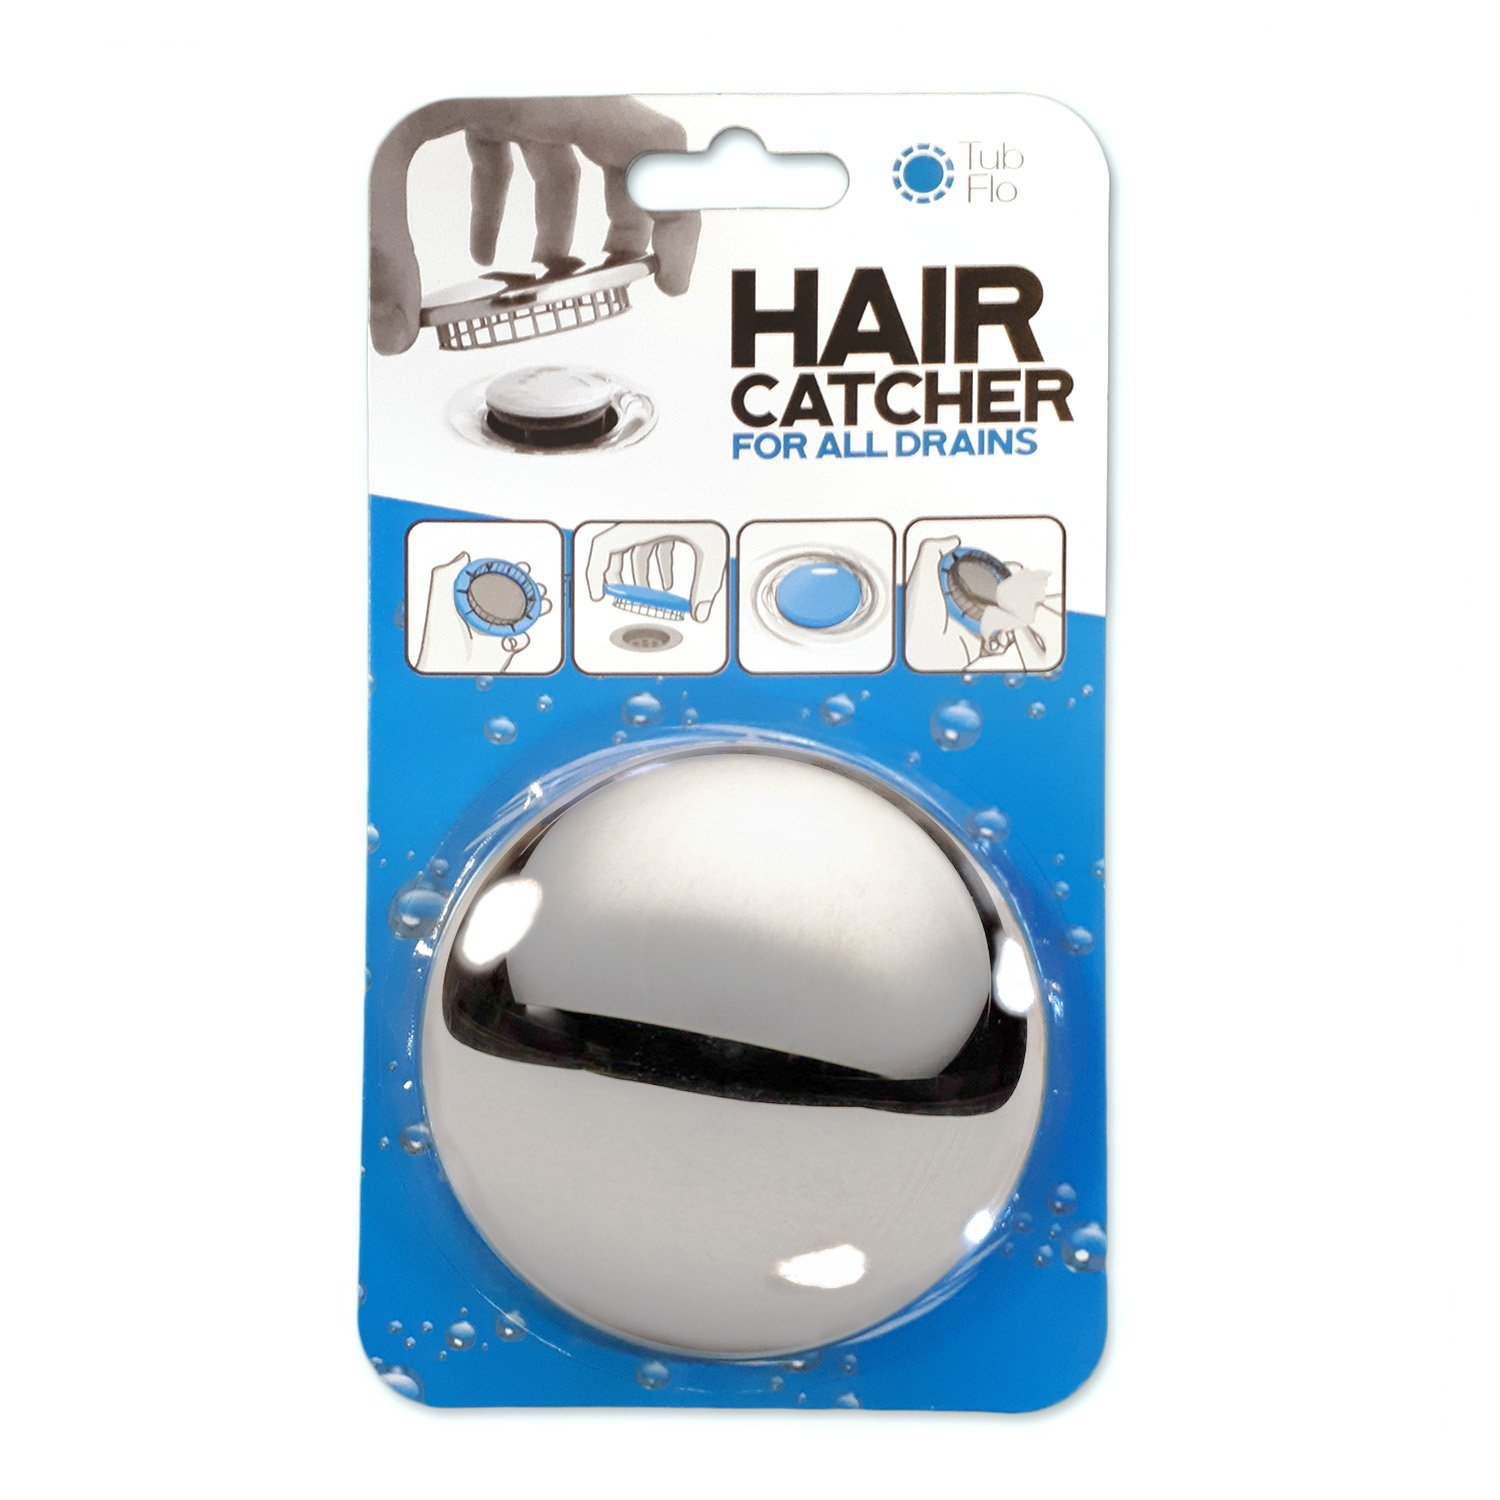 Tub Flo NEW The Beautiful Stainless Steel Hair Catcher that Requires No Installation and Keeps Water Flow. Universal Fit for All Showers, Tubs, Sinks, and Drains